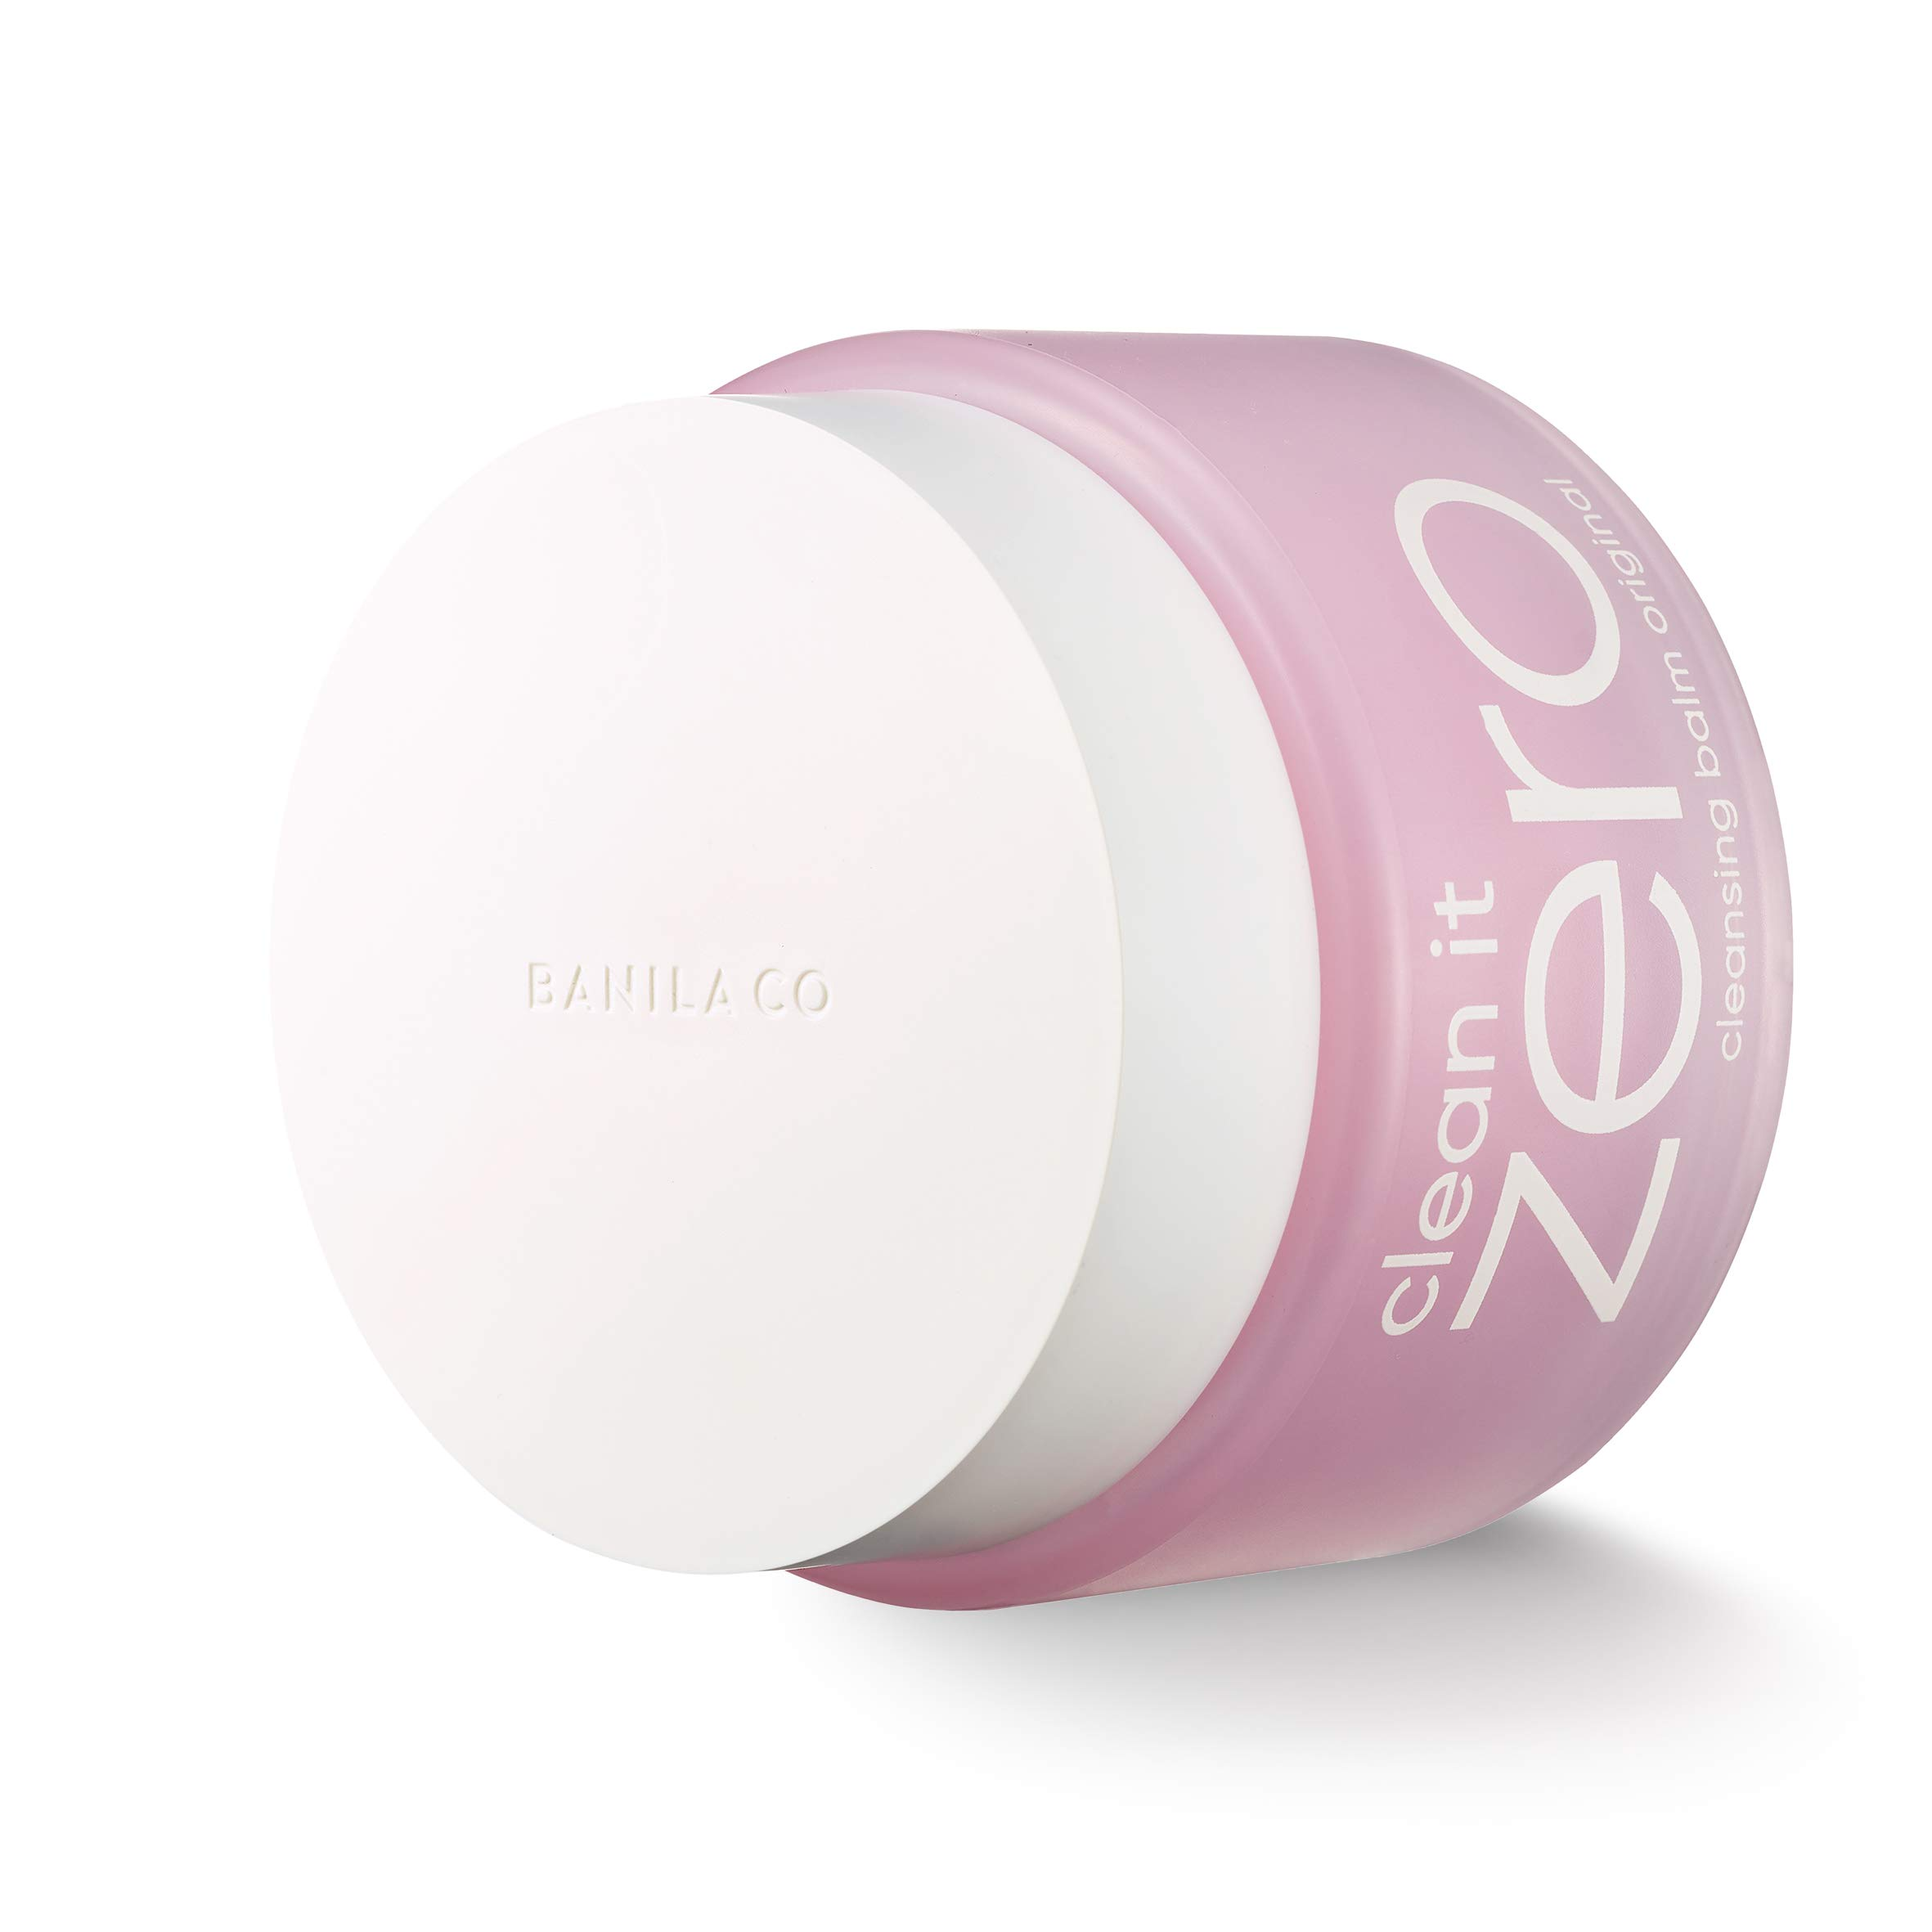 BANILA CO NEW Clean It Zero Cleansing Balm Original - Instant Makeup Remover, Facial Wash, 100ml, Double Cleanse, Hydrates, All Skin Types, Hypoallergenic, by BANILA CO